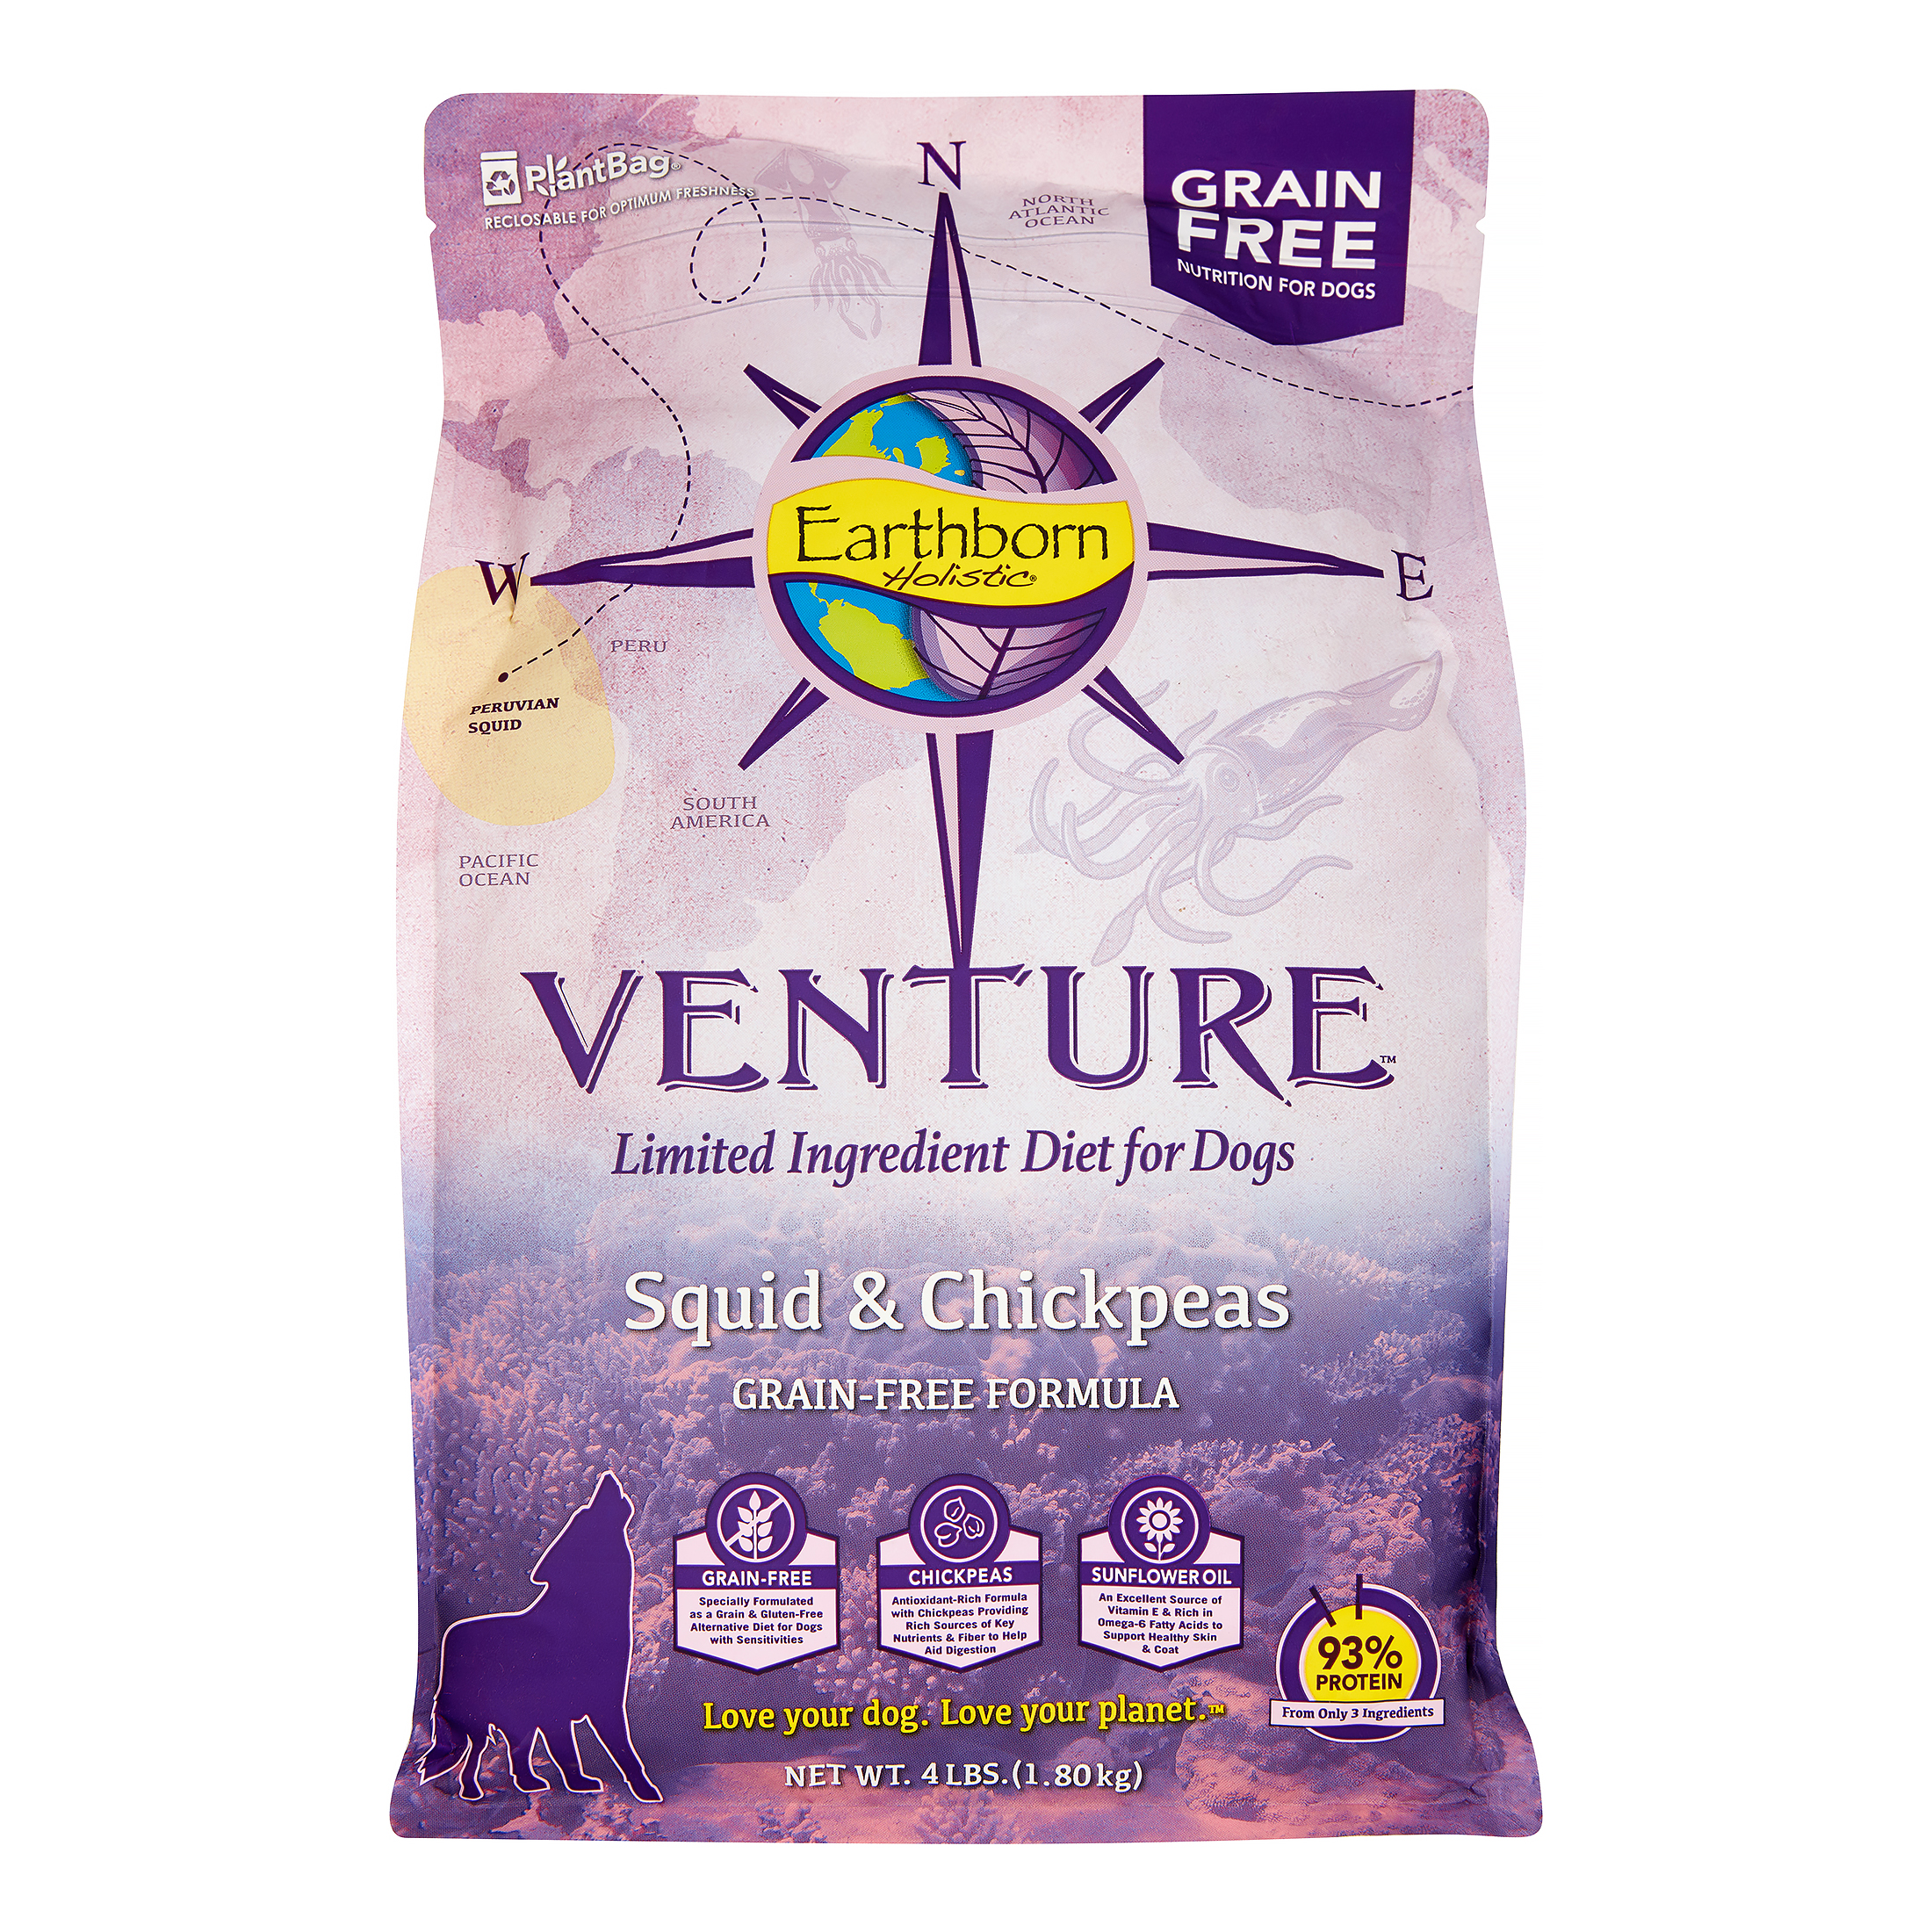 Earthborn Holistic Venture Squid & Chickpeas Limited Ingredient Diet Grain-Free Dry Dog Food, 4 Lb